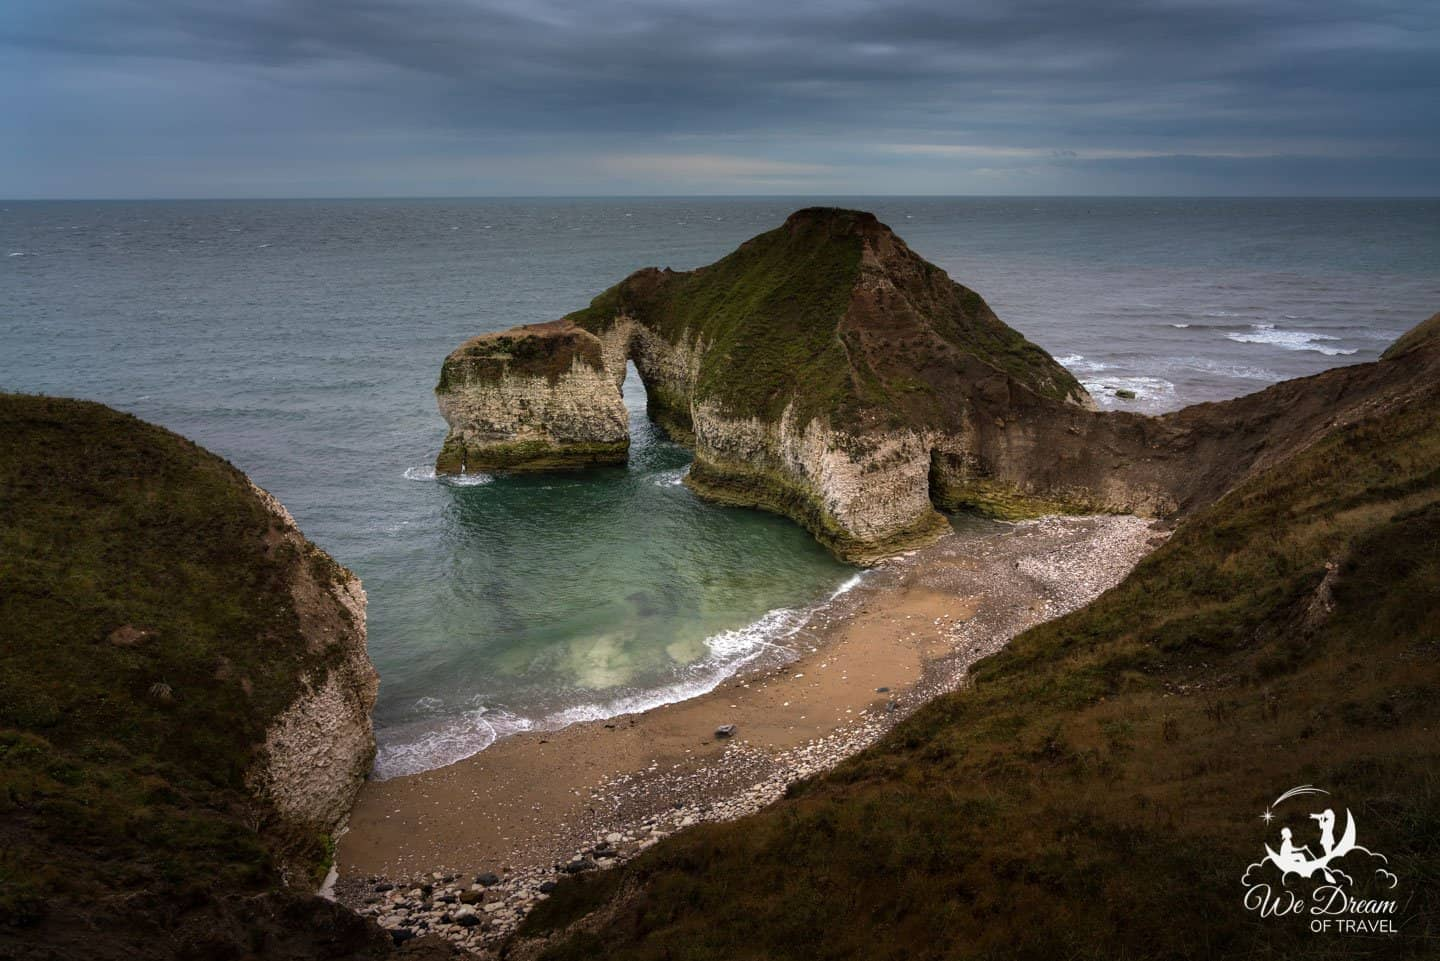 The Drinking Dinosaur at Flamborough Head was our favorite subject for photos.